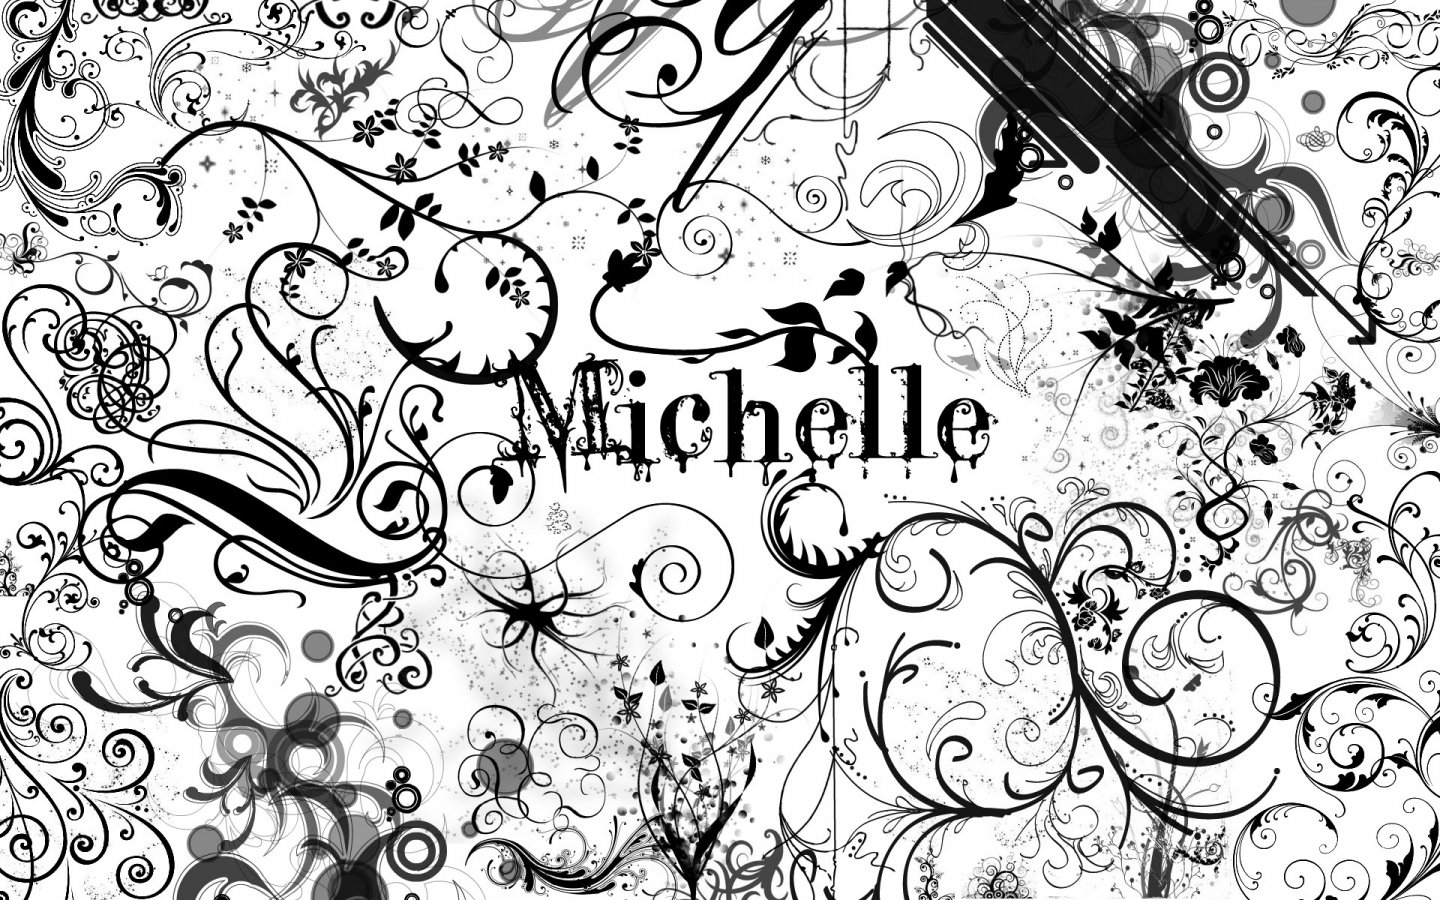 download Michelle Name Wallpaper Images Pictures Becuo 1440x900